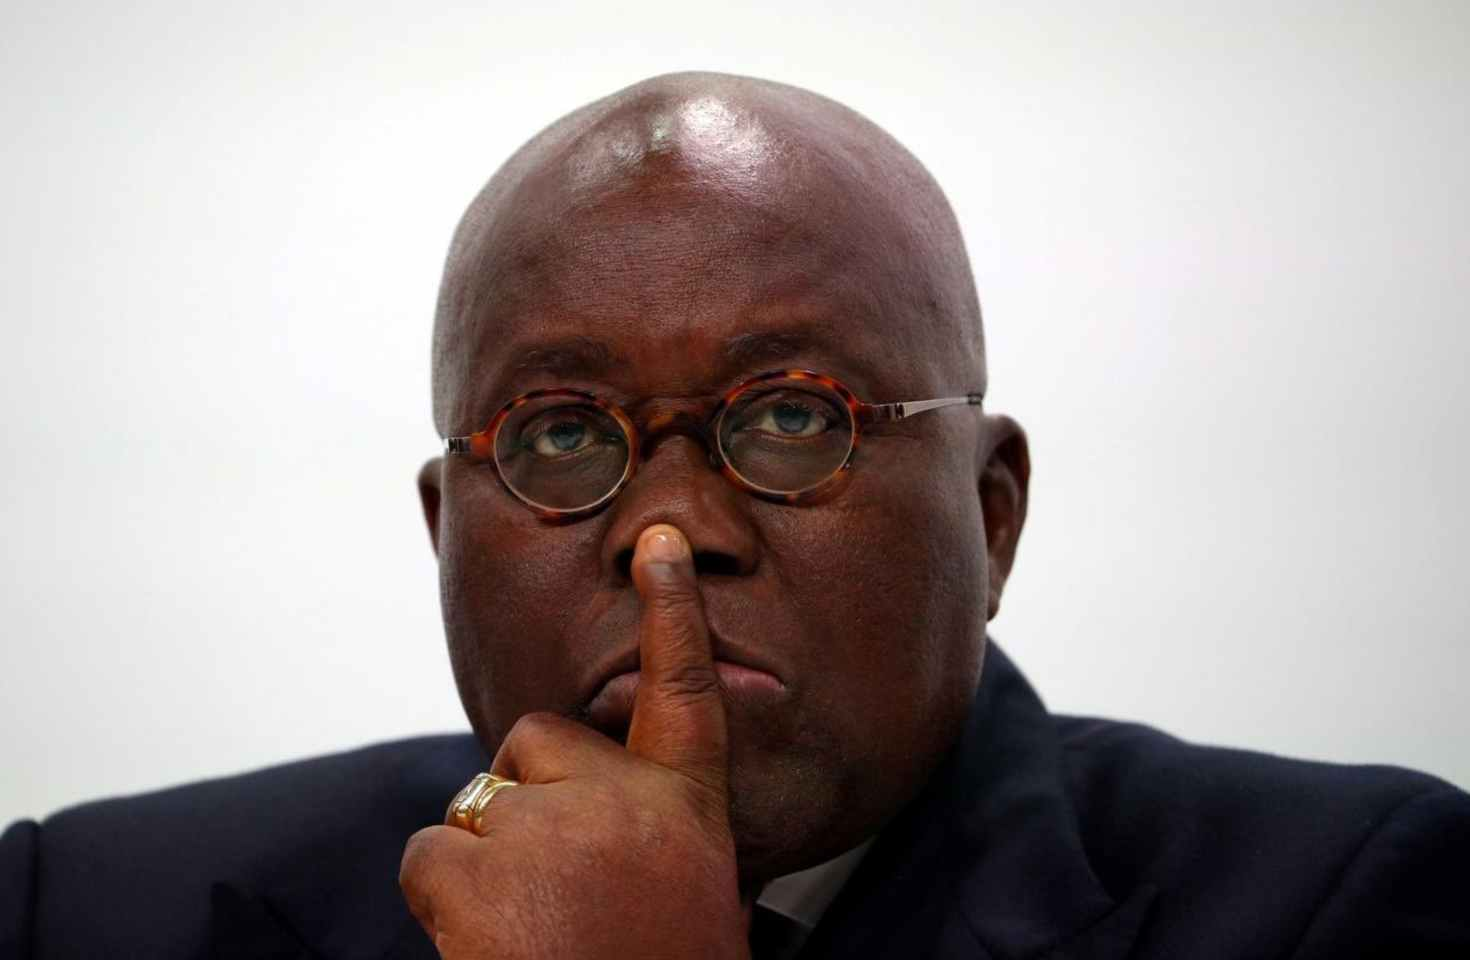 Akufo-Addo to rename university of Ghana after JB Danquah – Report